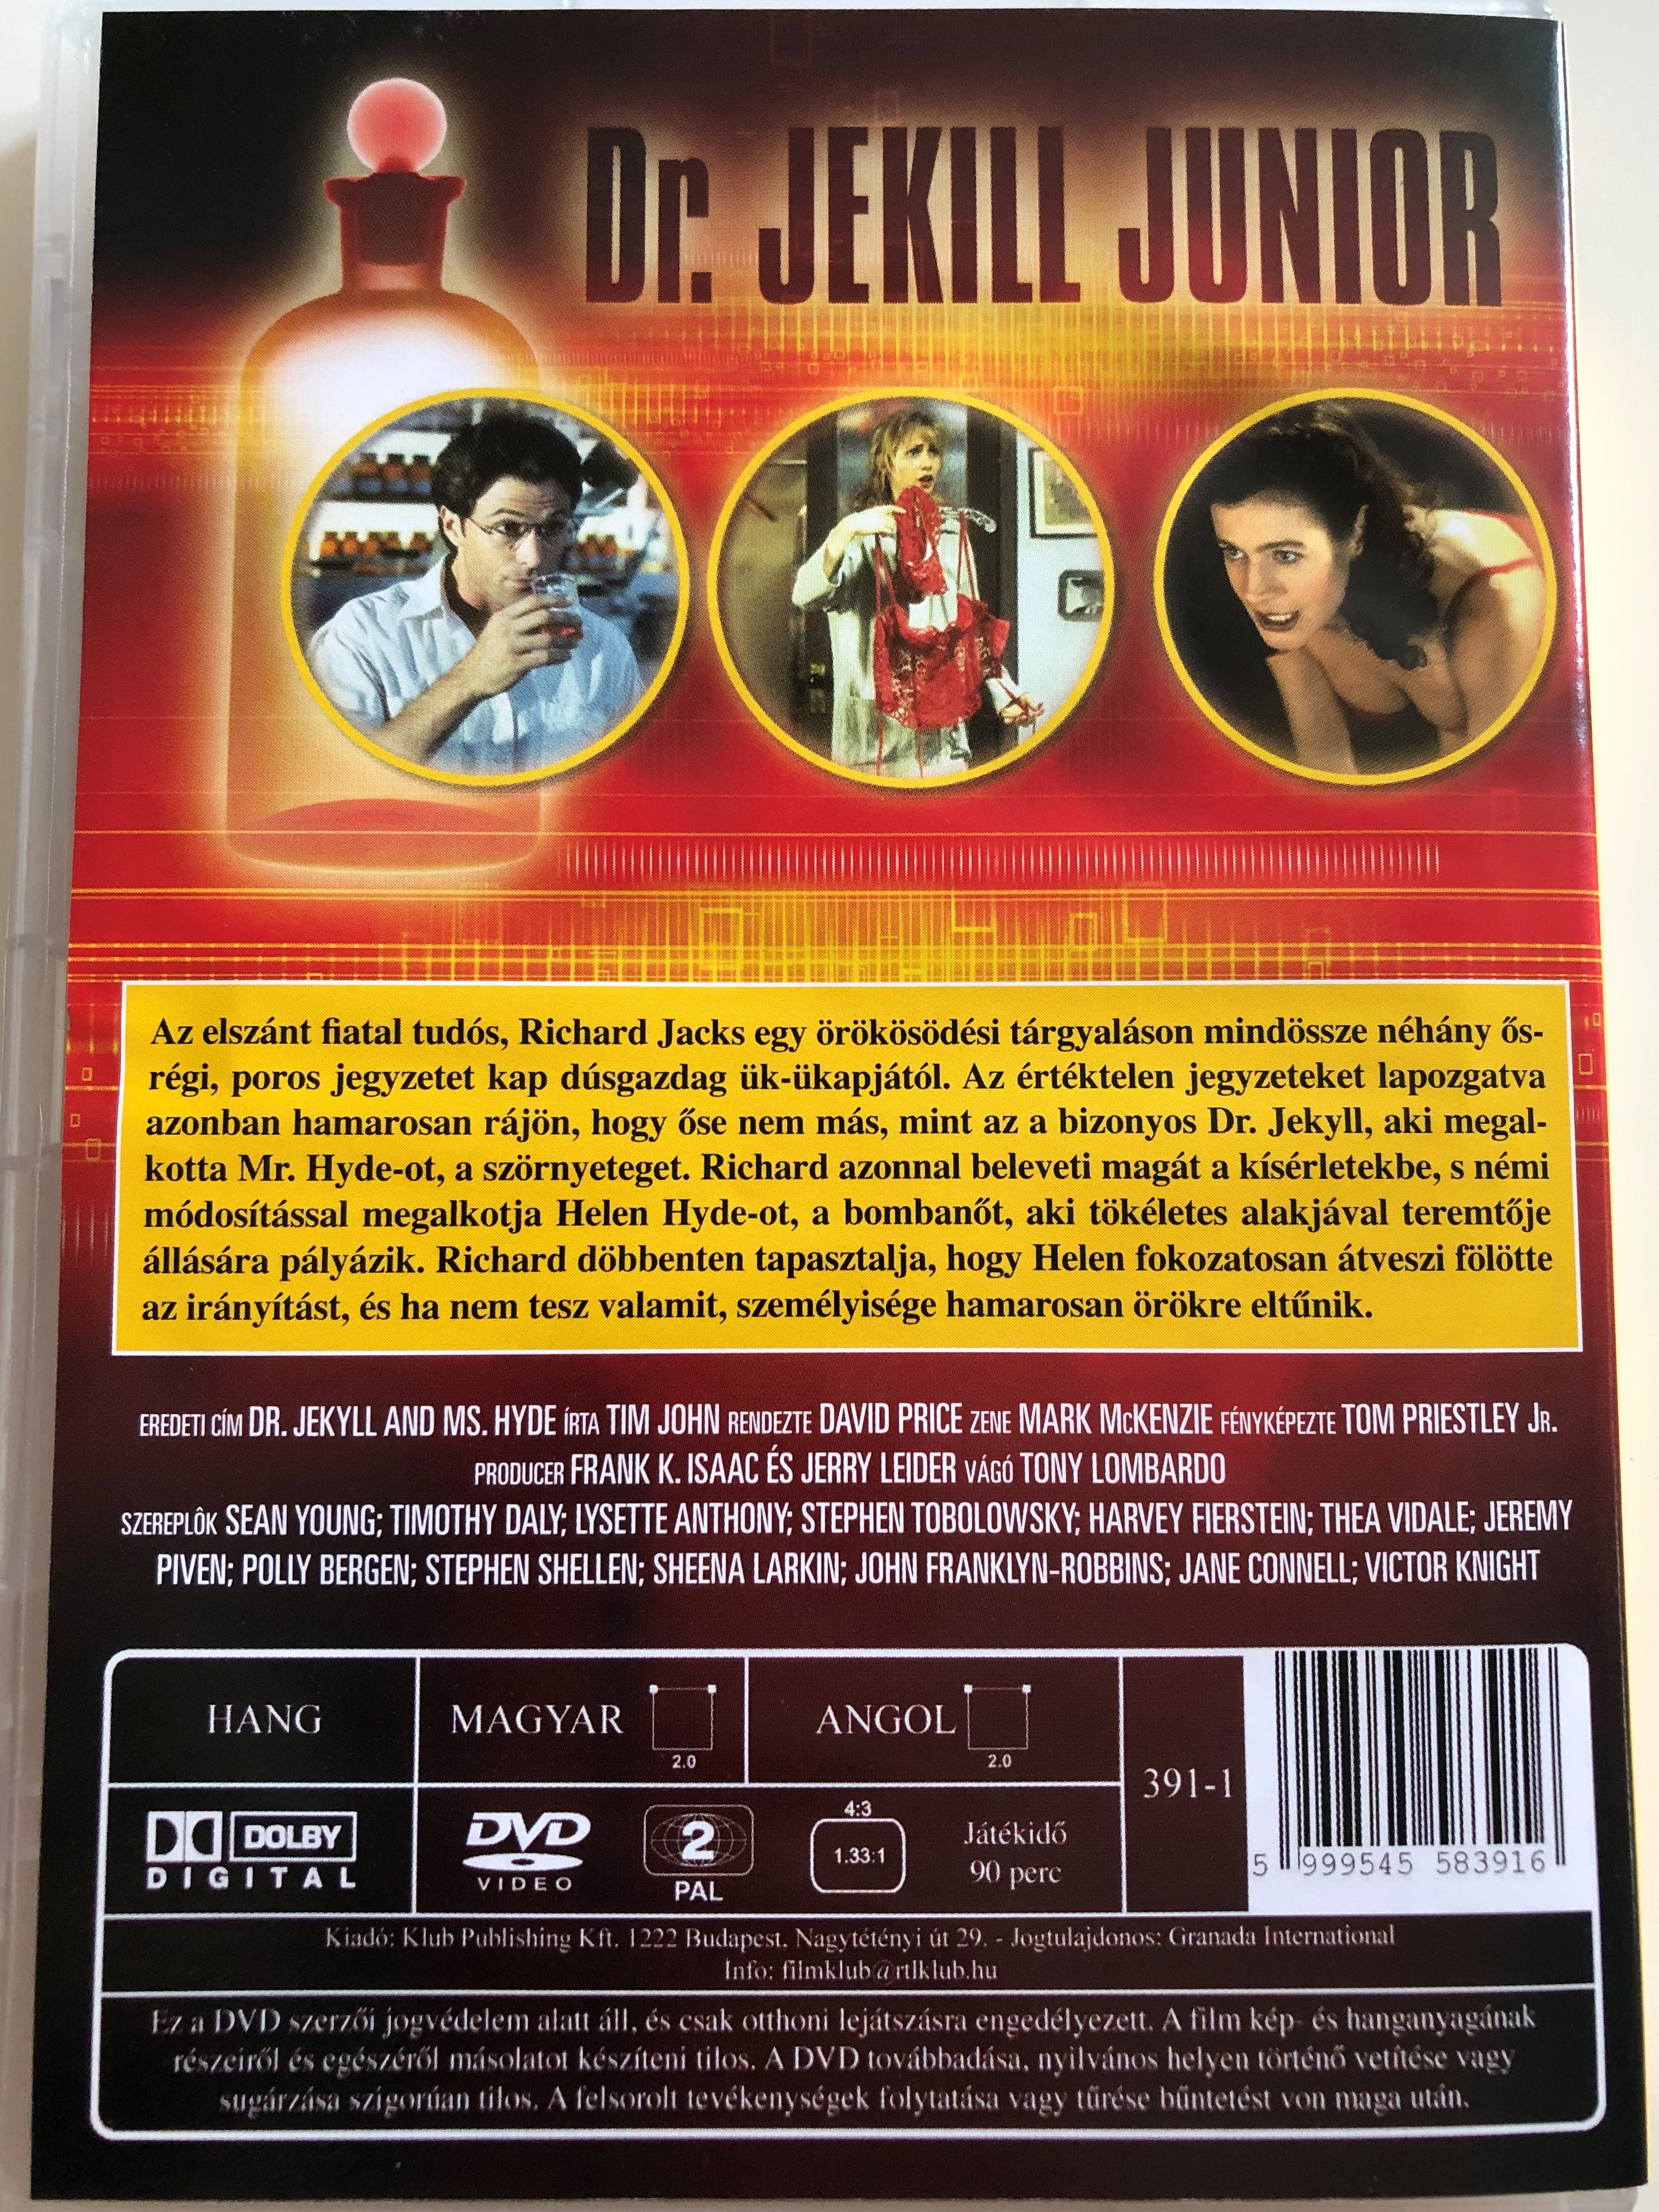 dr.-jekyll-and-ms.-hyde-dvd-1995-dr.-jekill-junior-directed-by-david-price-starring-sean-young-tim-daly-lysette-anthony-harvey-fierstein-stephen-tobolowsky-jeremy-piven-2-.jpg